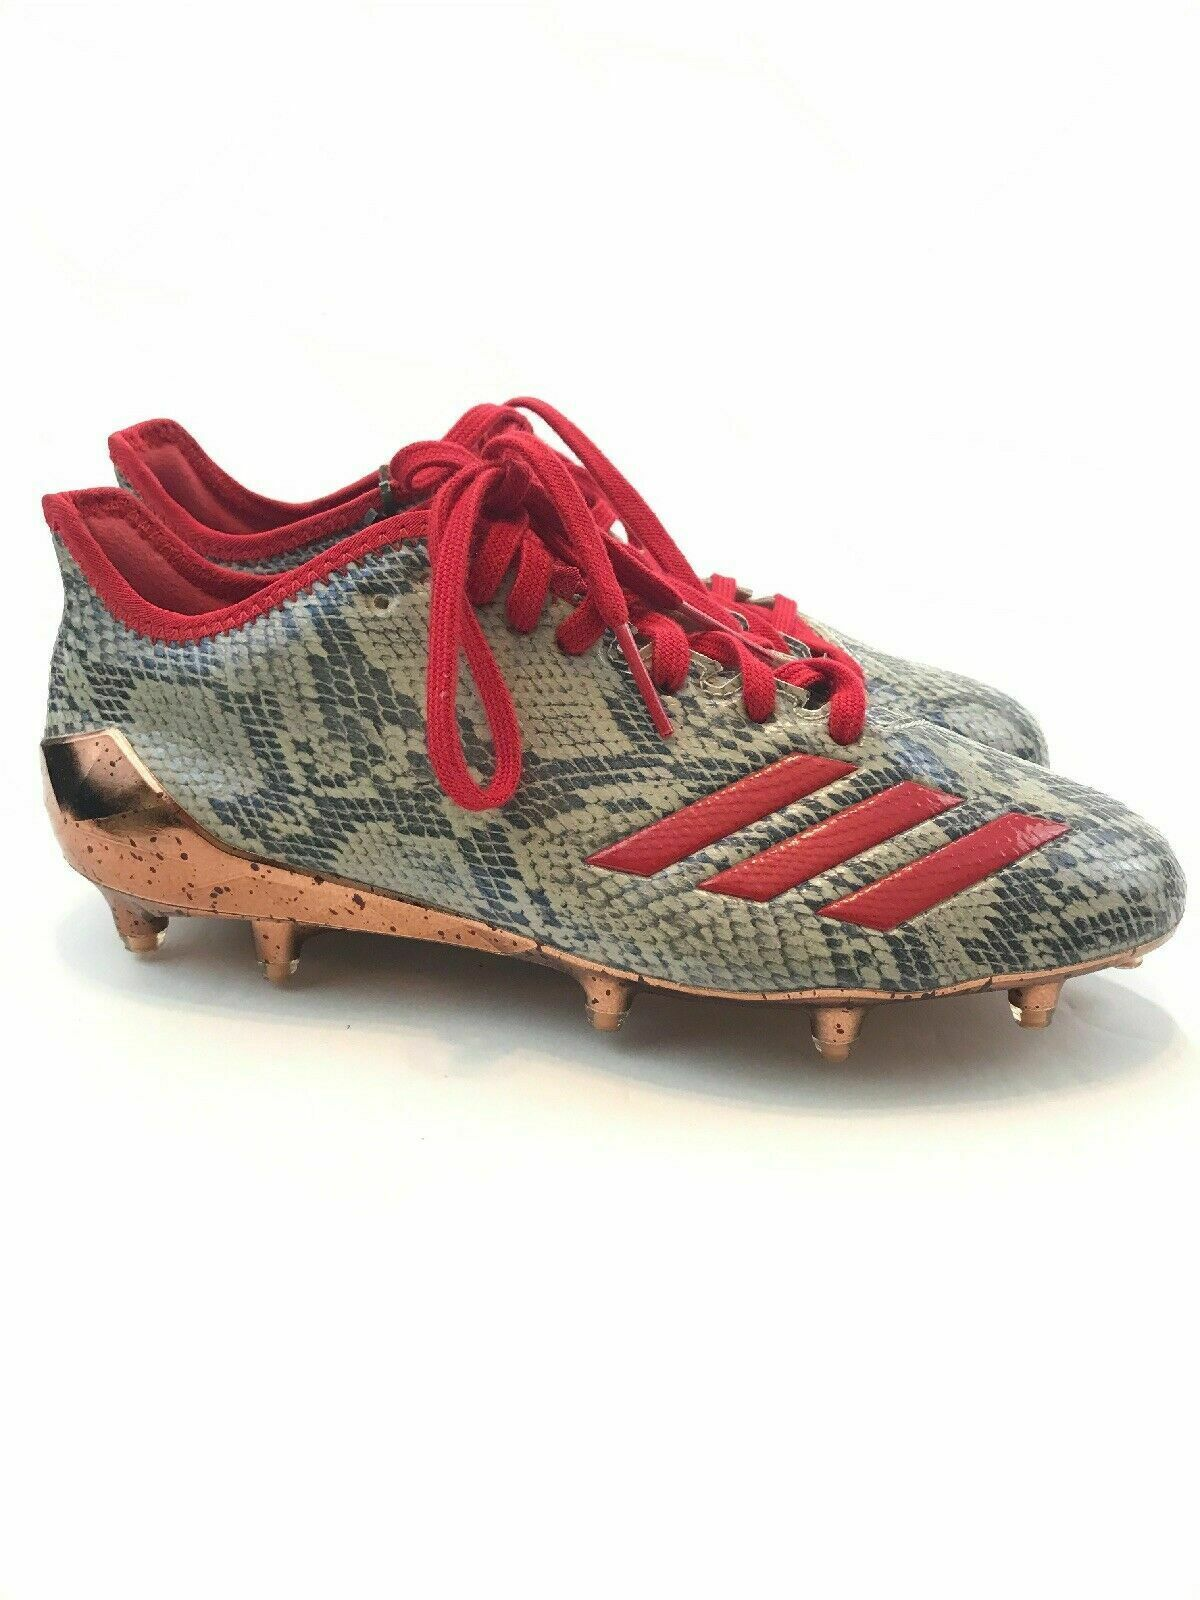 online store 7bb04 3bc6b Adidas Adizero 5 Star 6.0 Football Cleats Texas Snakeskin Red BY3153 size  6.5